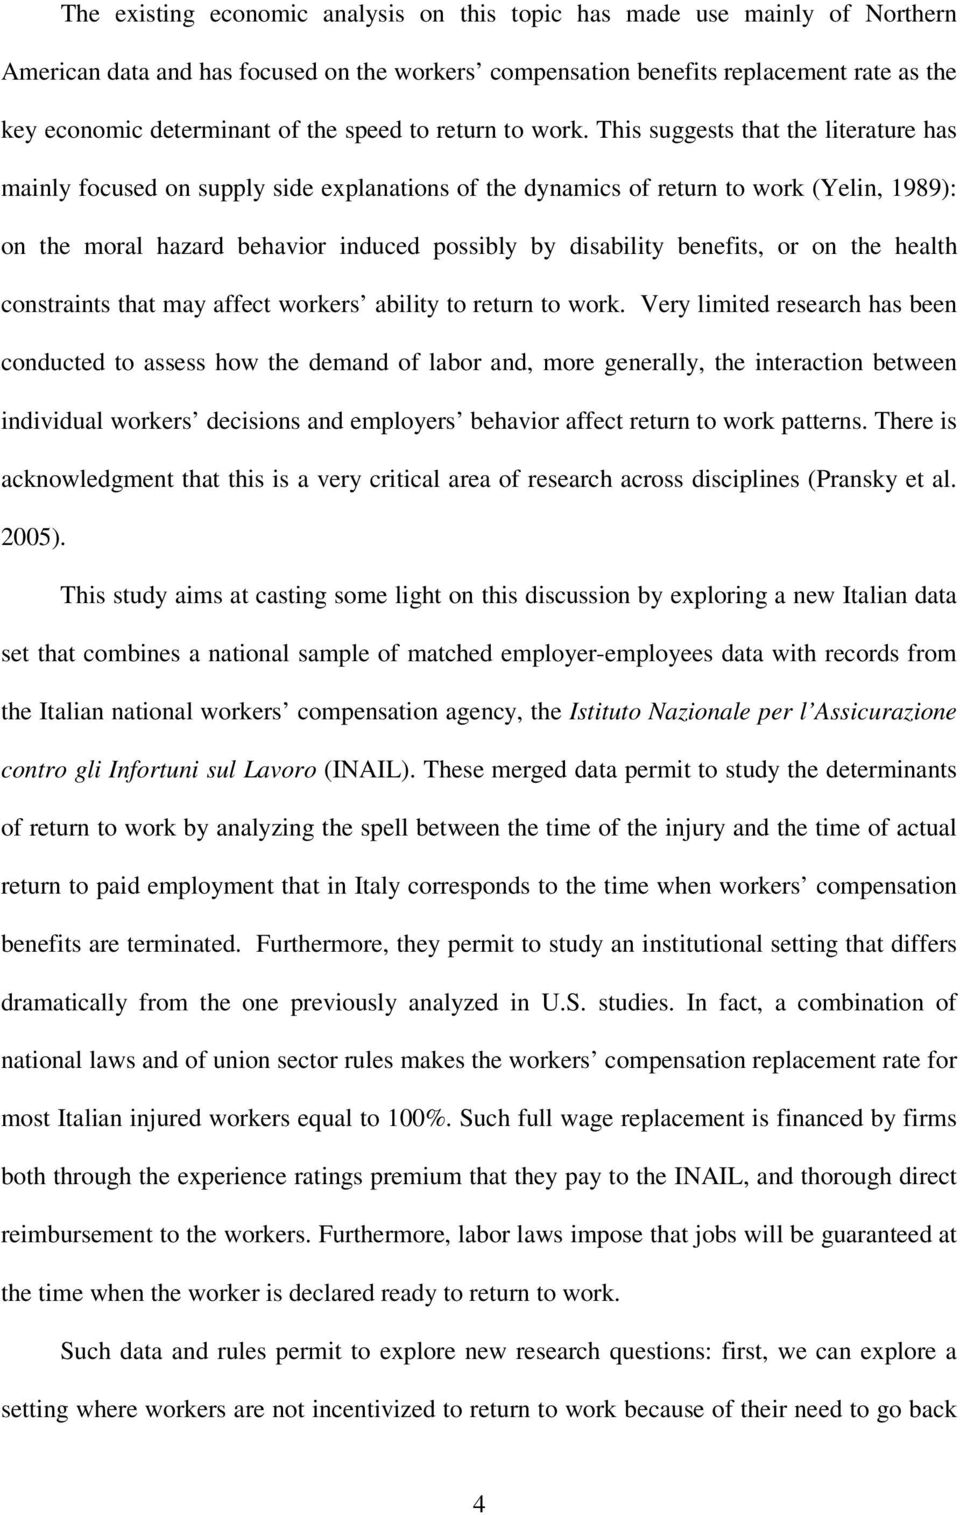 This suggests that the literature has mainly focused on supply side explanations of the dynamics of return to work (Yelin, 1989): on the moral hazard behavior induced possibly by disability benefits,